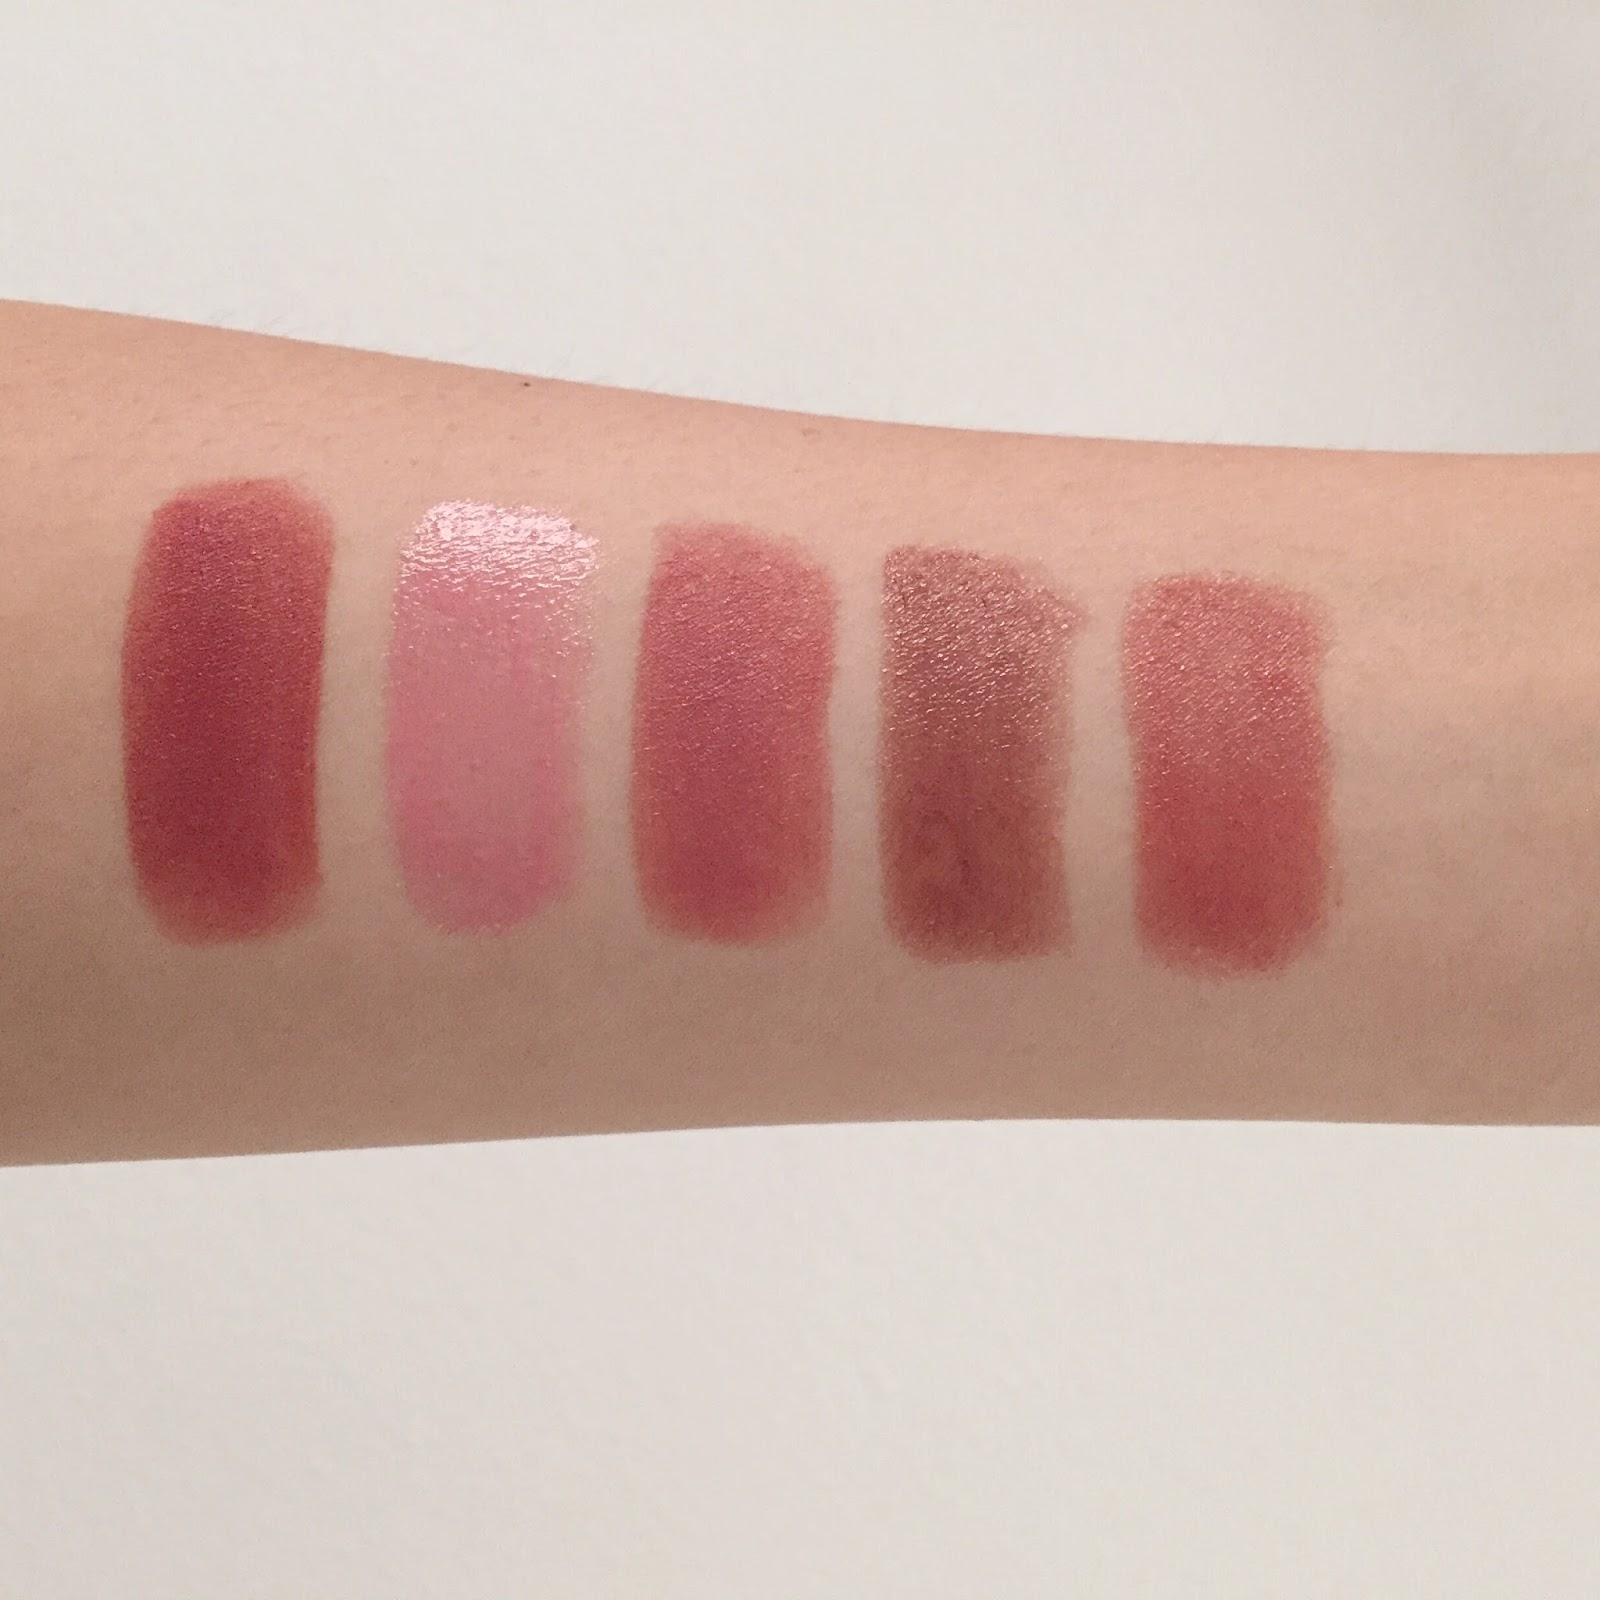 Silk Naturals Lipsticks: Canoodle, Chantilly, Garter, Jaybird, Roberta review swatches hellolindasau